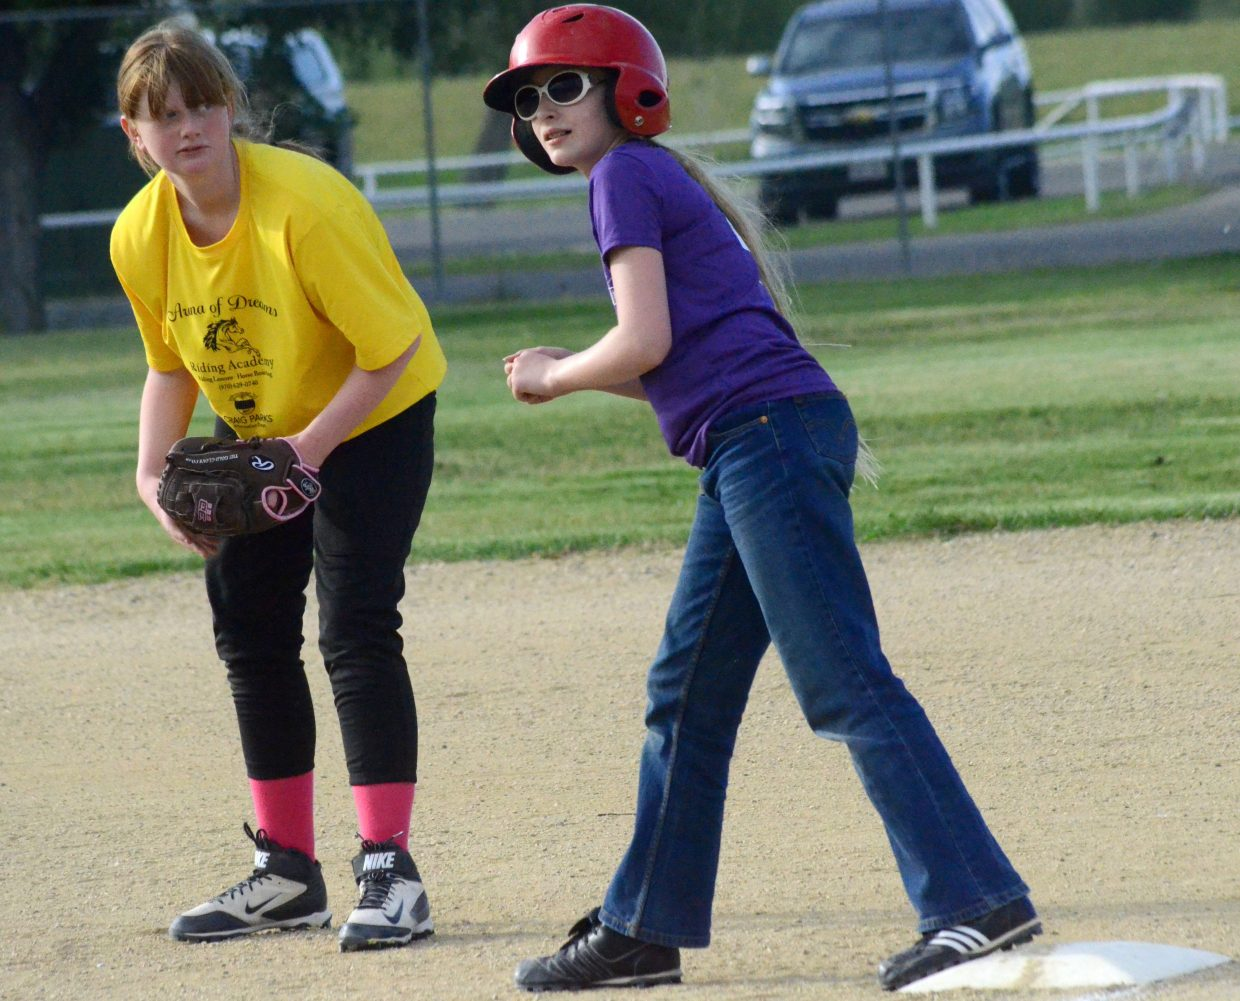 Arena of Dreams' Dylan Herndon, left, keeps an eye on runner Reagen Bower, of A Kidz Dentist, during a tournament game for Craig Parks and Recreation softball.